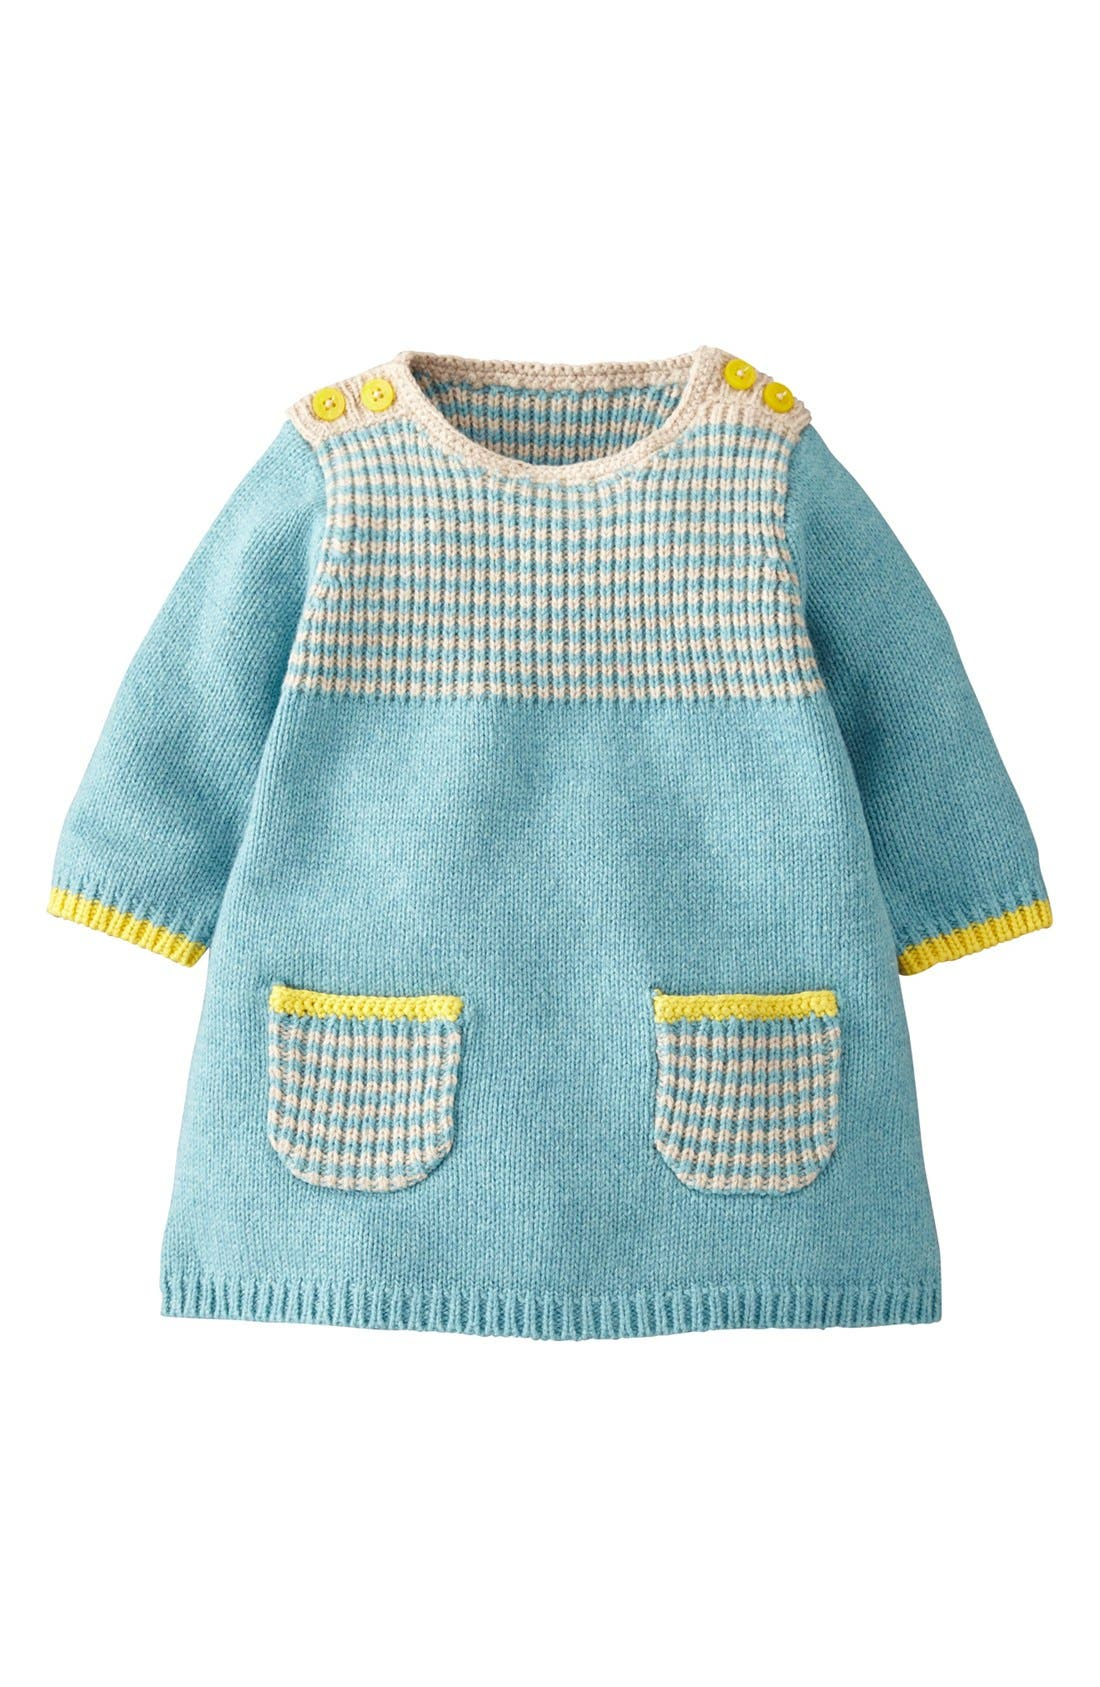 Alternate Image 1 Selected - Mini Boden 'Stripey' Knit Dress (Baby Girls)